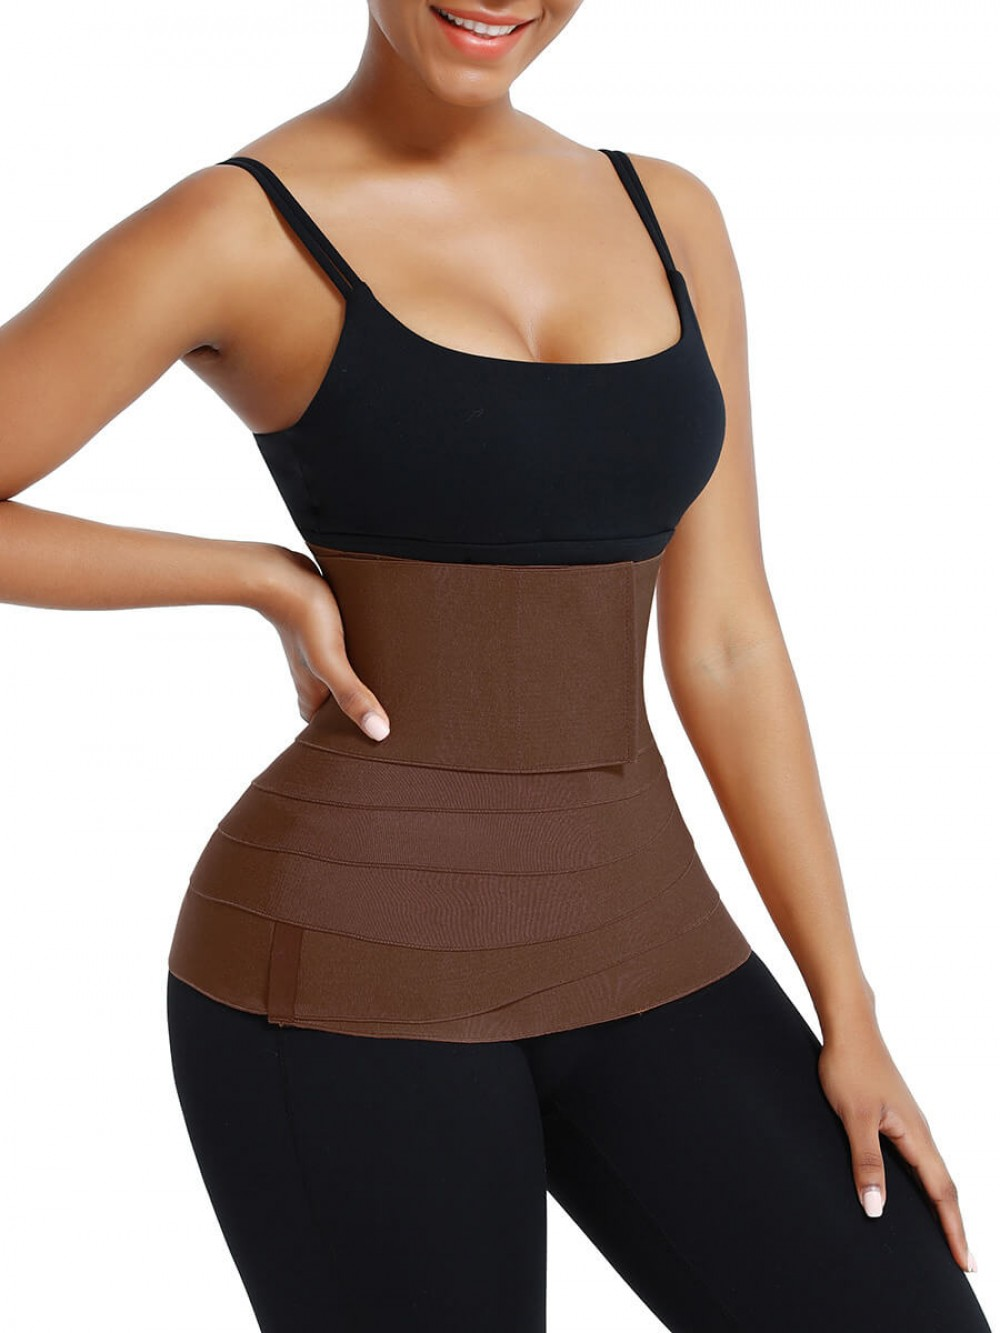 Brown Slimming Tummy Waist Control Wrap Body Shaper For Lose Weight